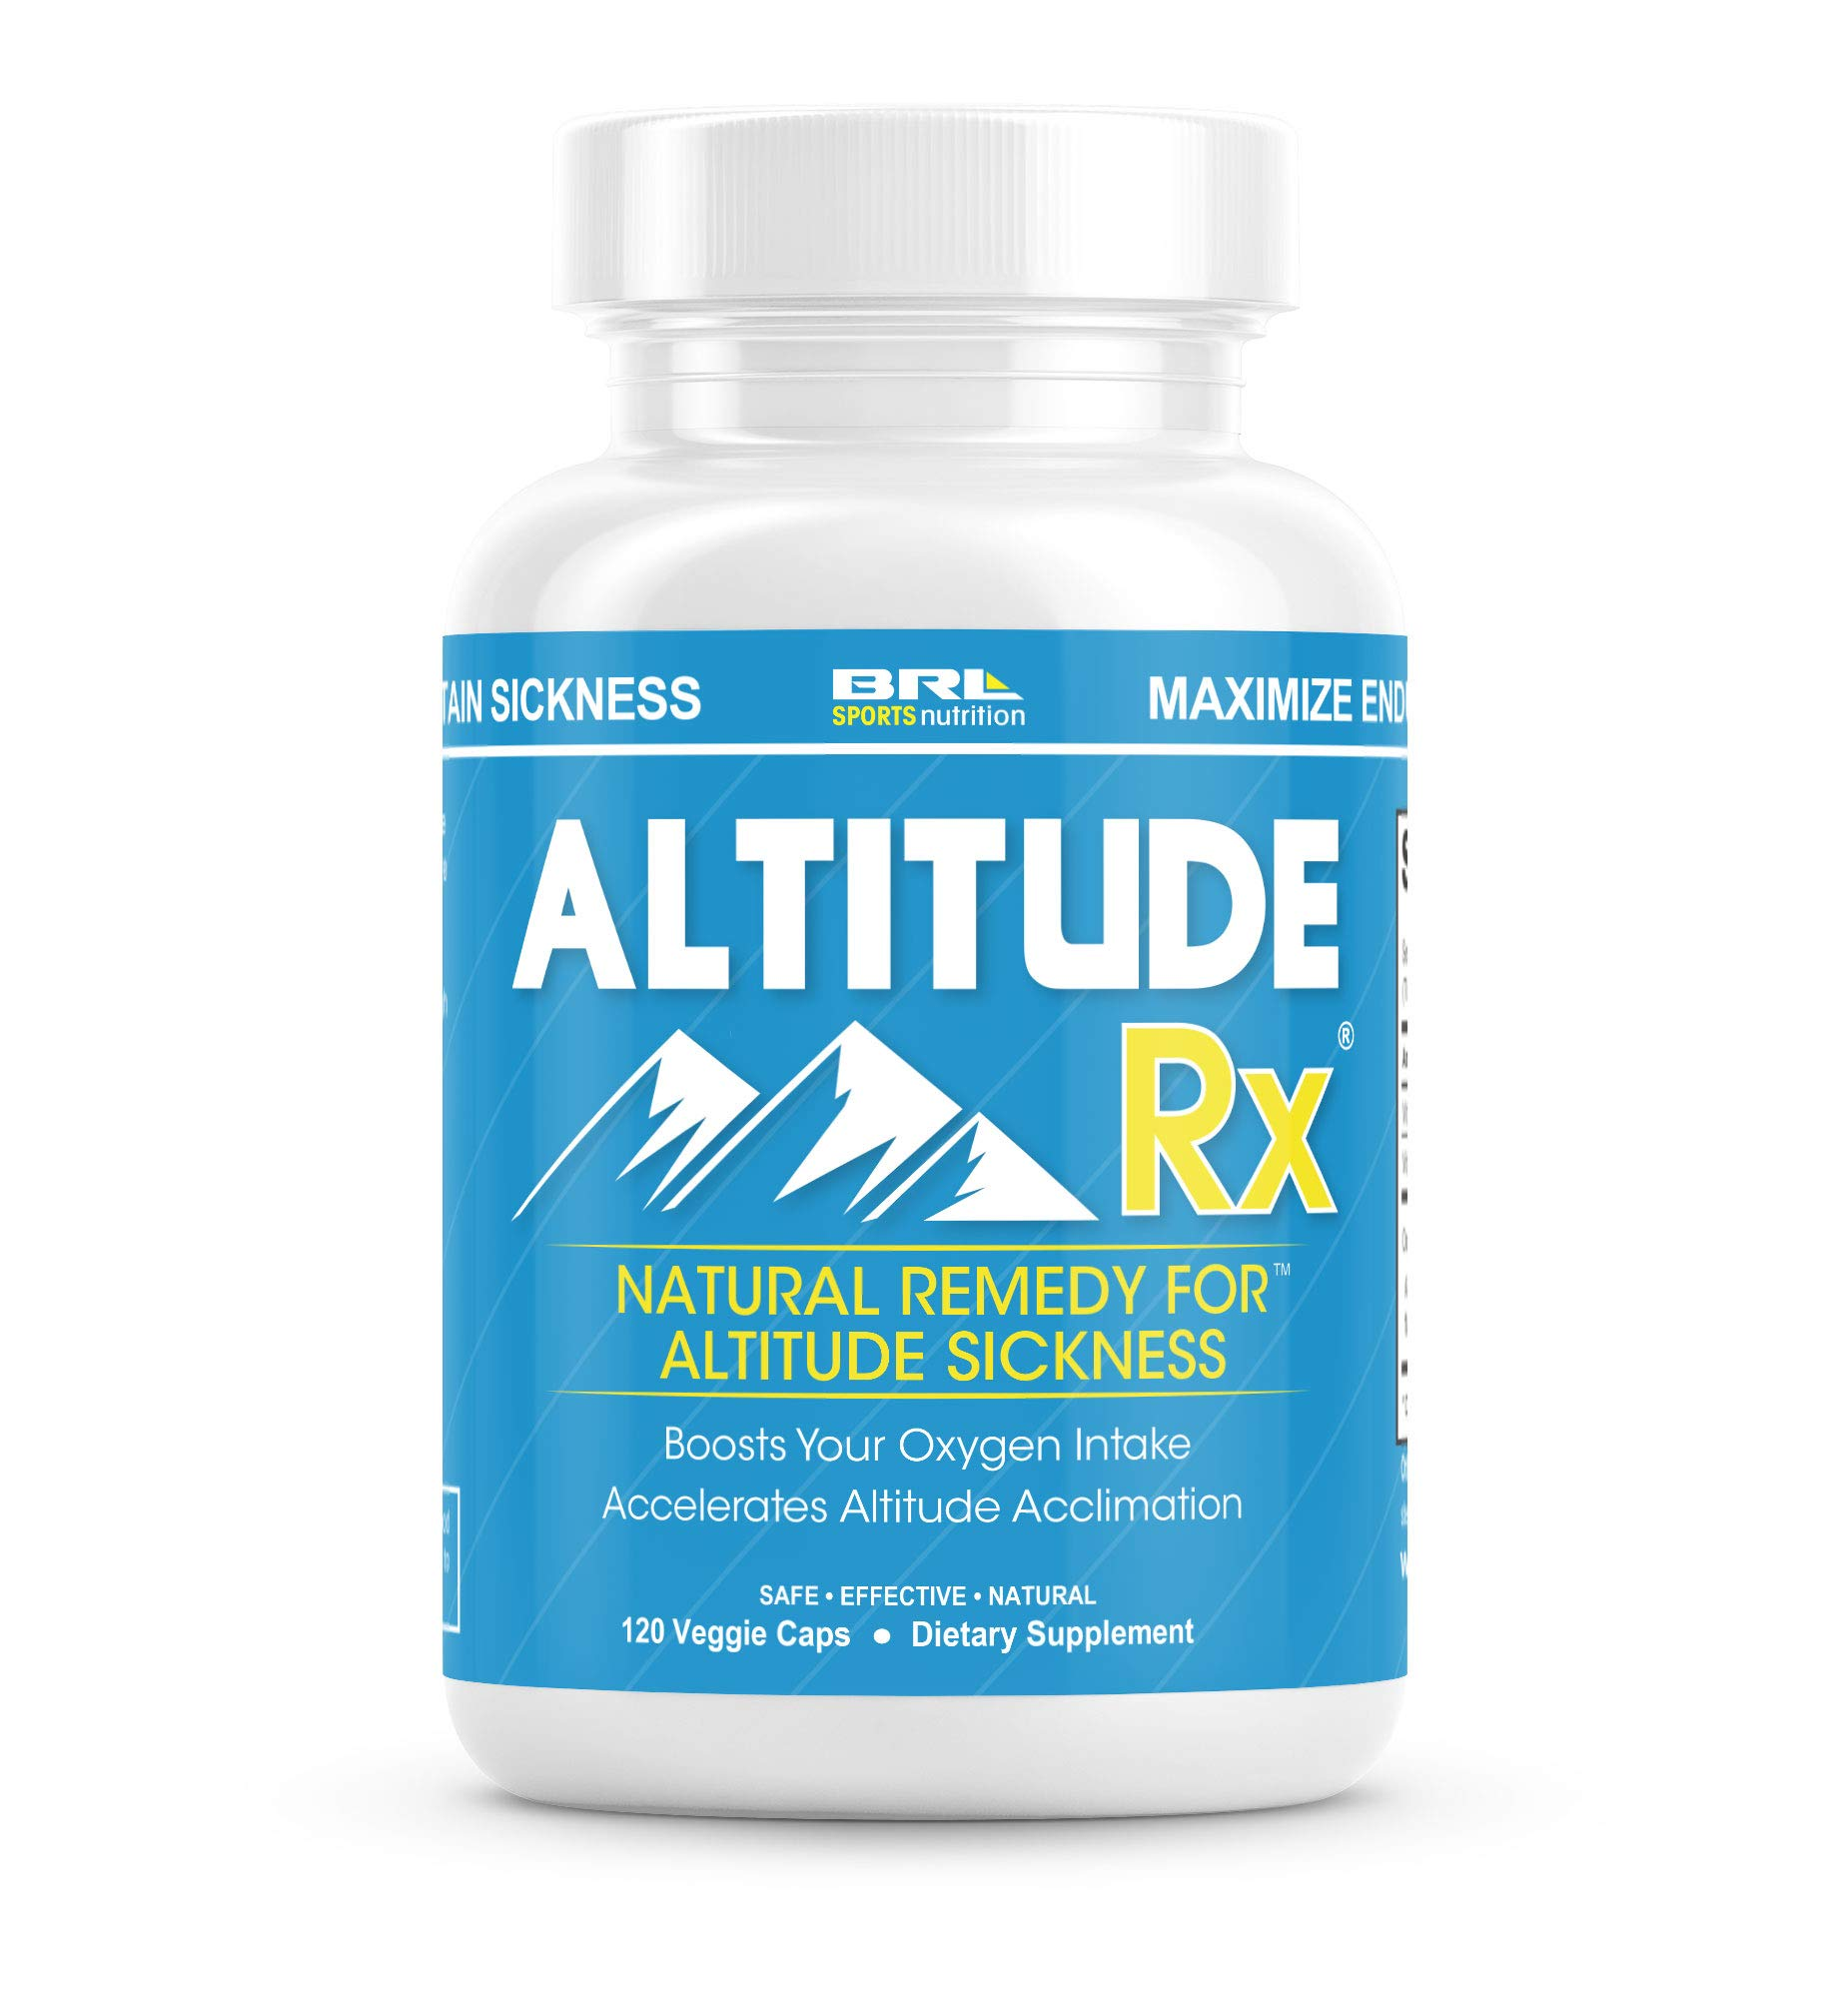 Altitude Rx OxyBoost Complex - Altitude Sickness Relief for Ski or Mountain Trips with Vitamin C, Alpha Lipoic Acid and Rhodiola (120 Vegetarian Caps) by BRL Sports Nutrition